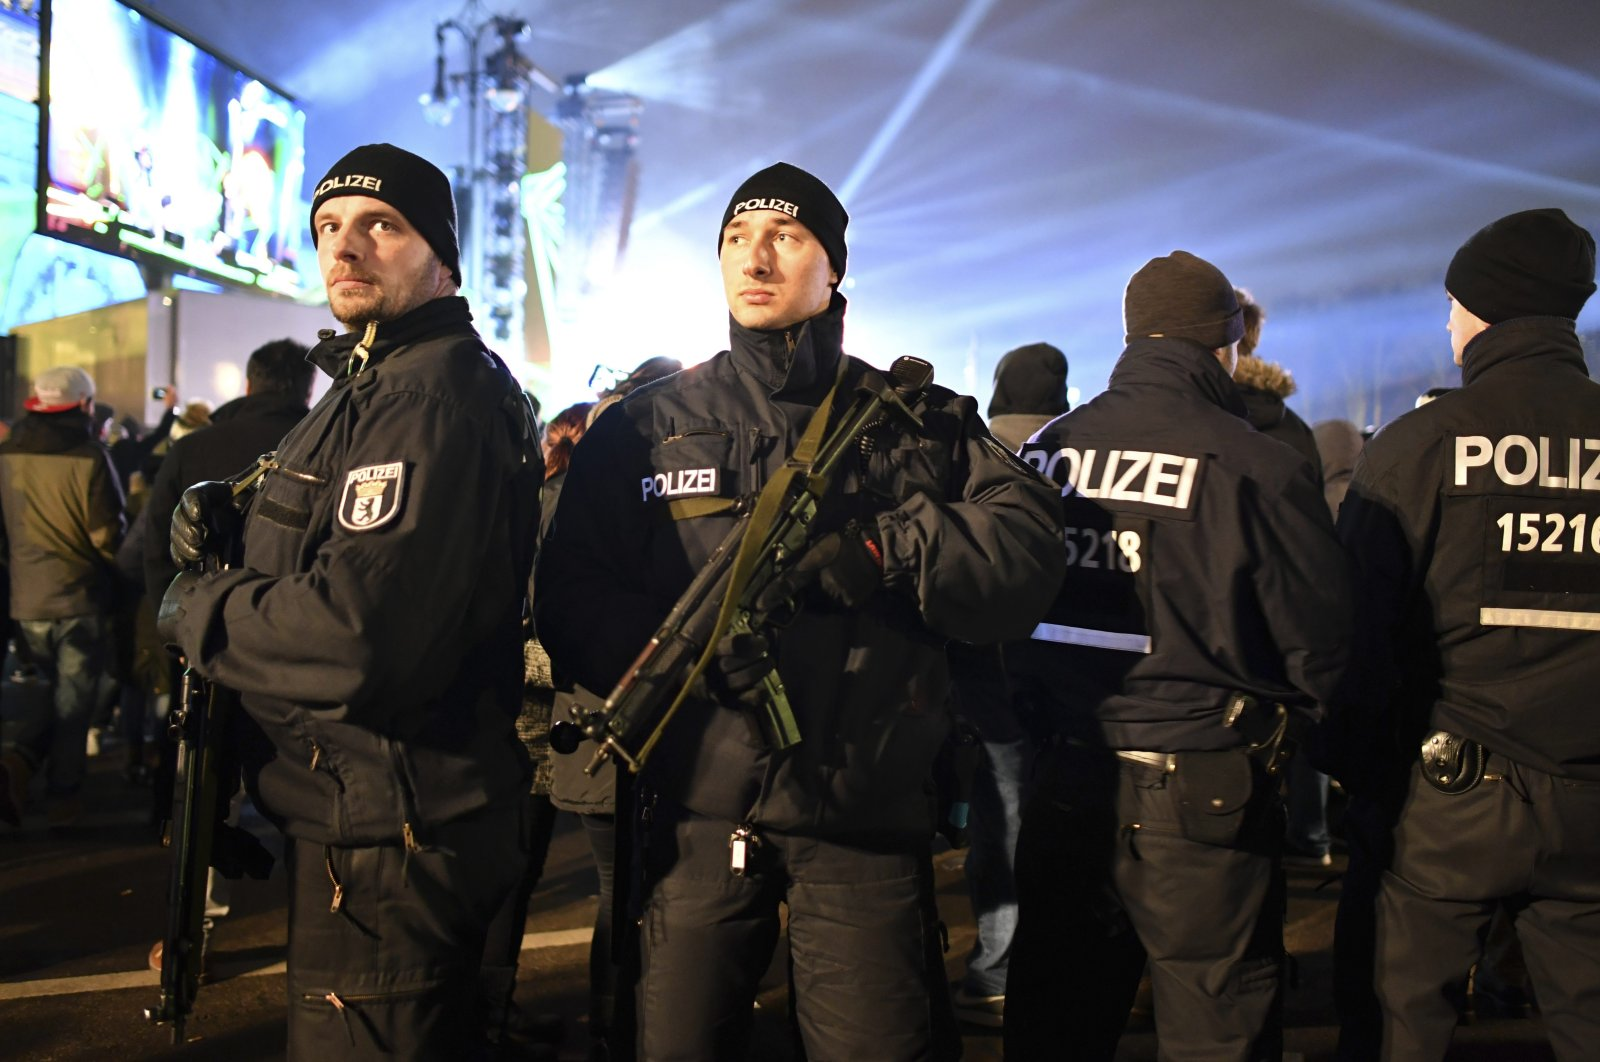 Police officers with submachine guns secure the New Year's Eve party at the Brandenburg Gate in Berlin, Saturday, Dec. 31, 2016. (AP Photo)